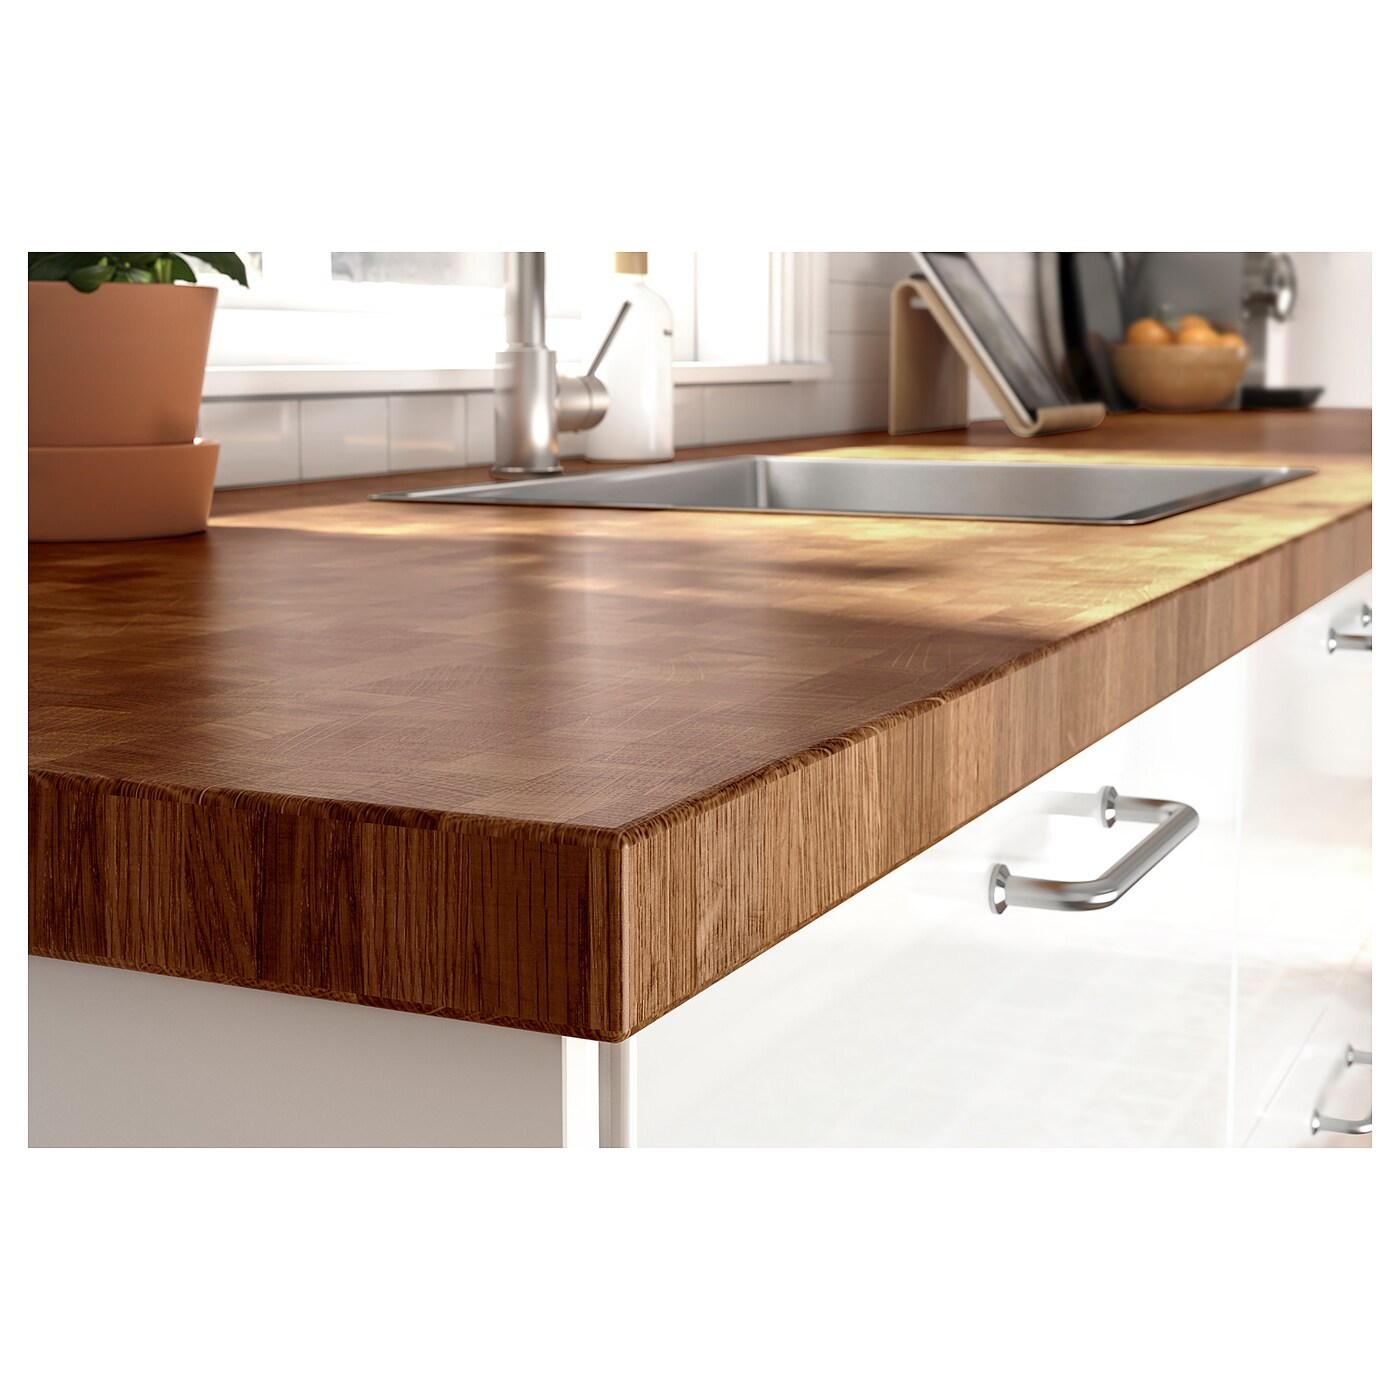 SkogsÅ Countertop Oak Veneer Shop Here Ikea